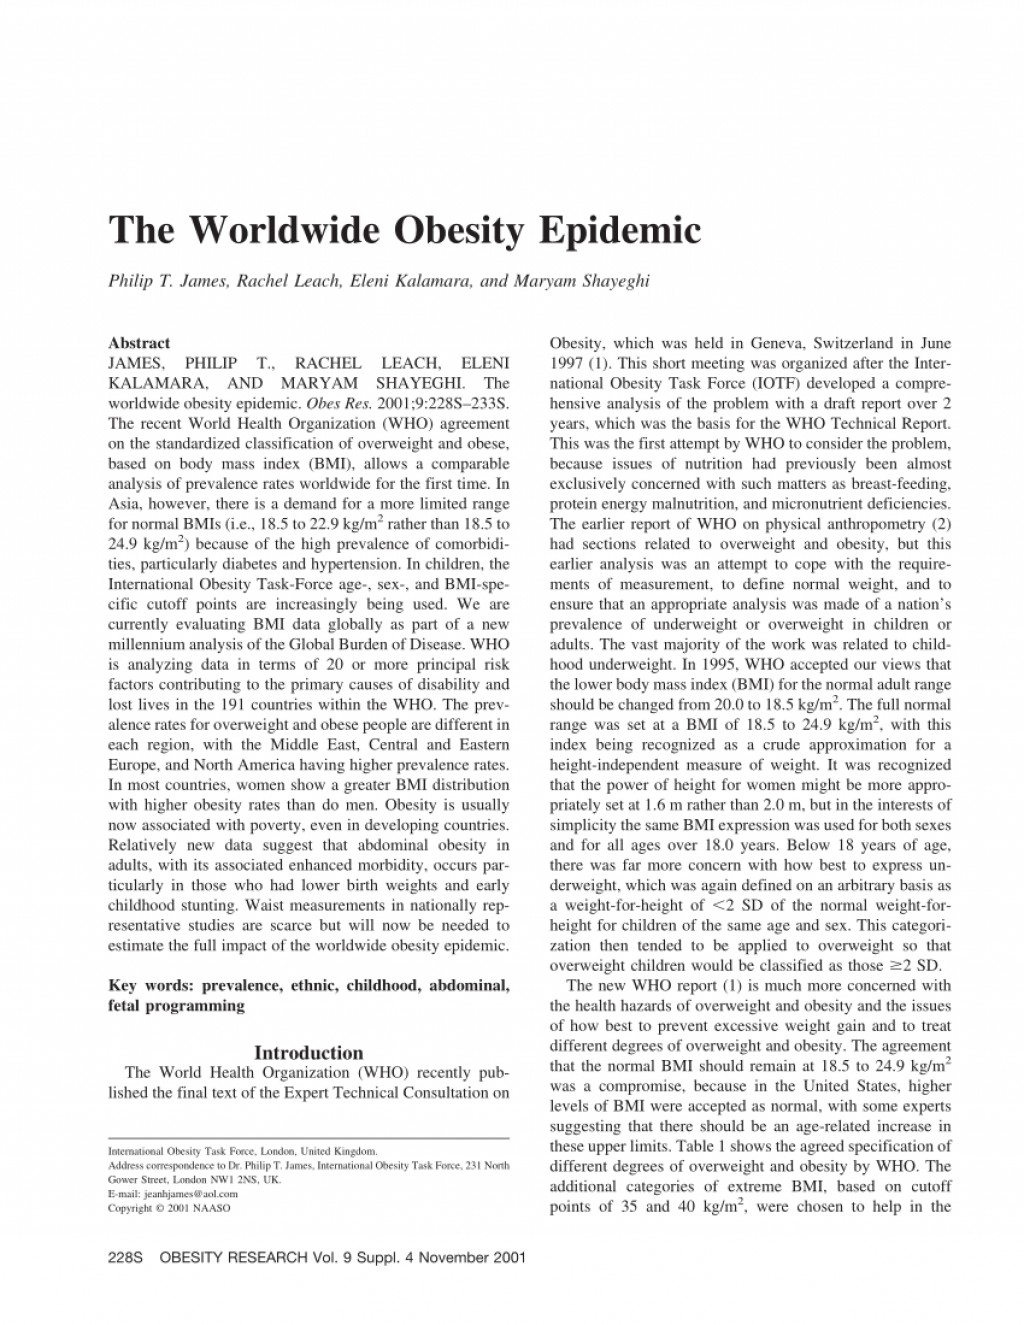 004 Research Paper Largepreview Obesity Epidemic Surprising Papers Large